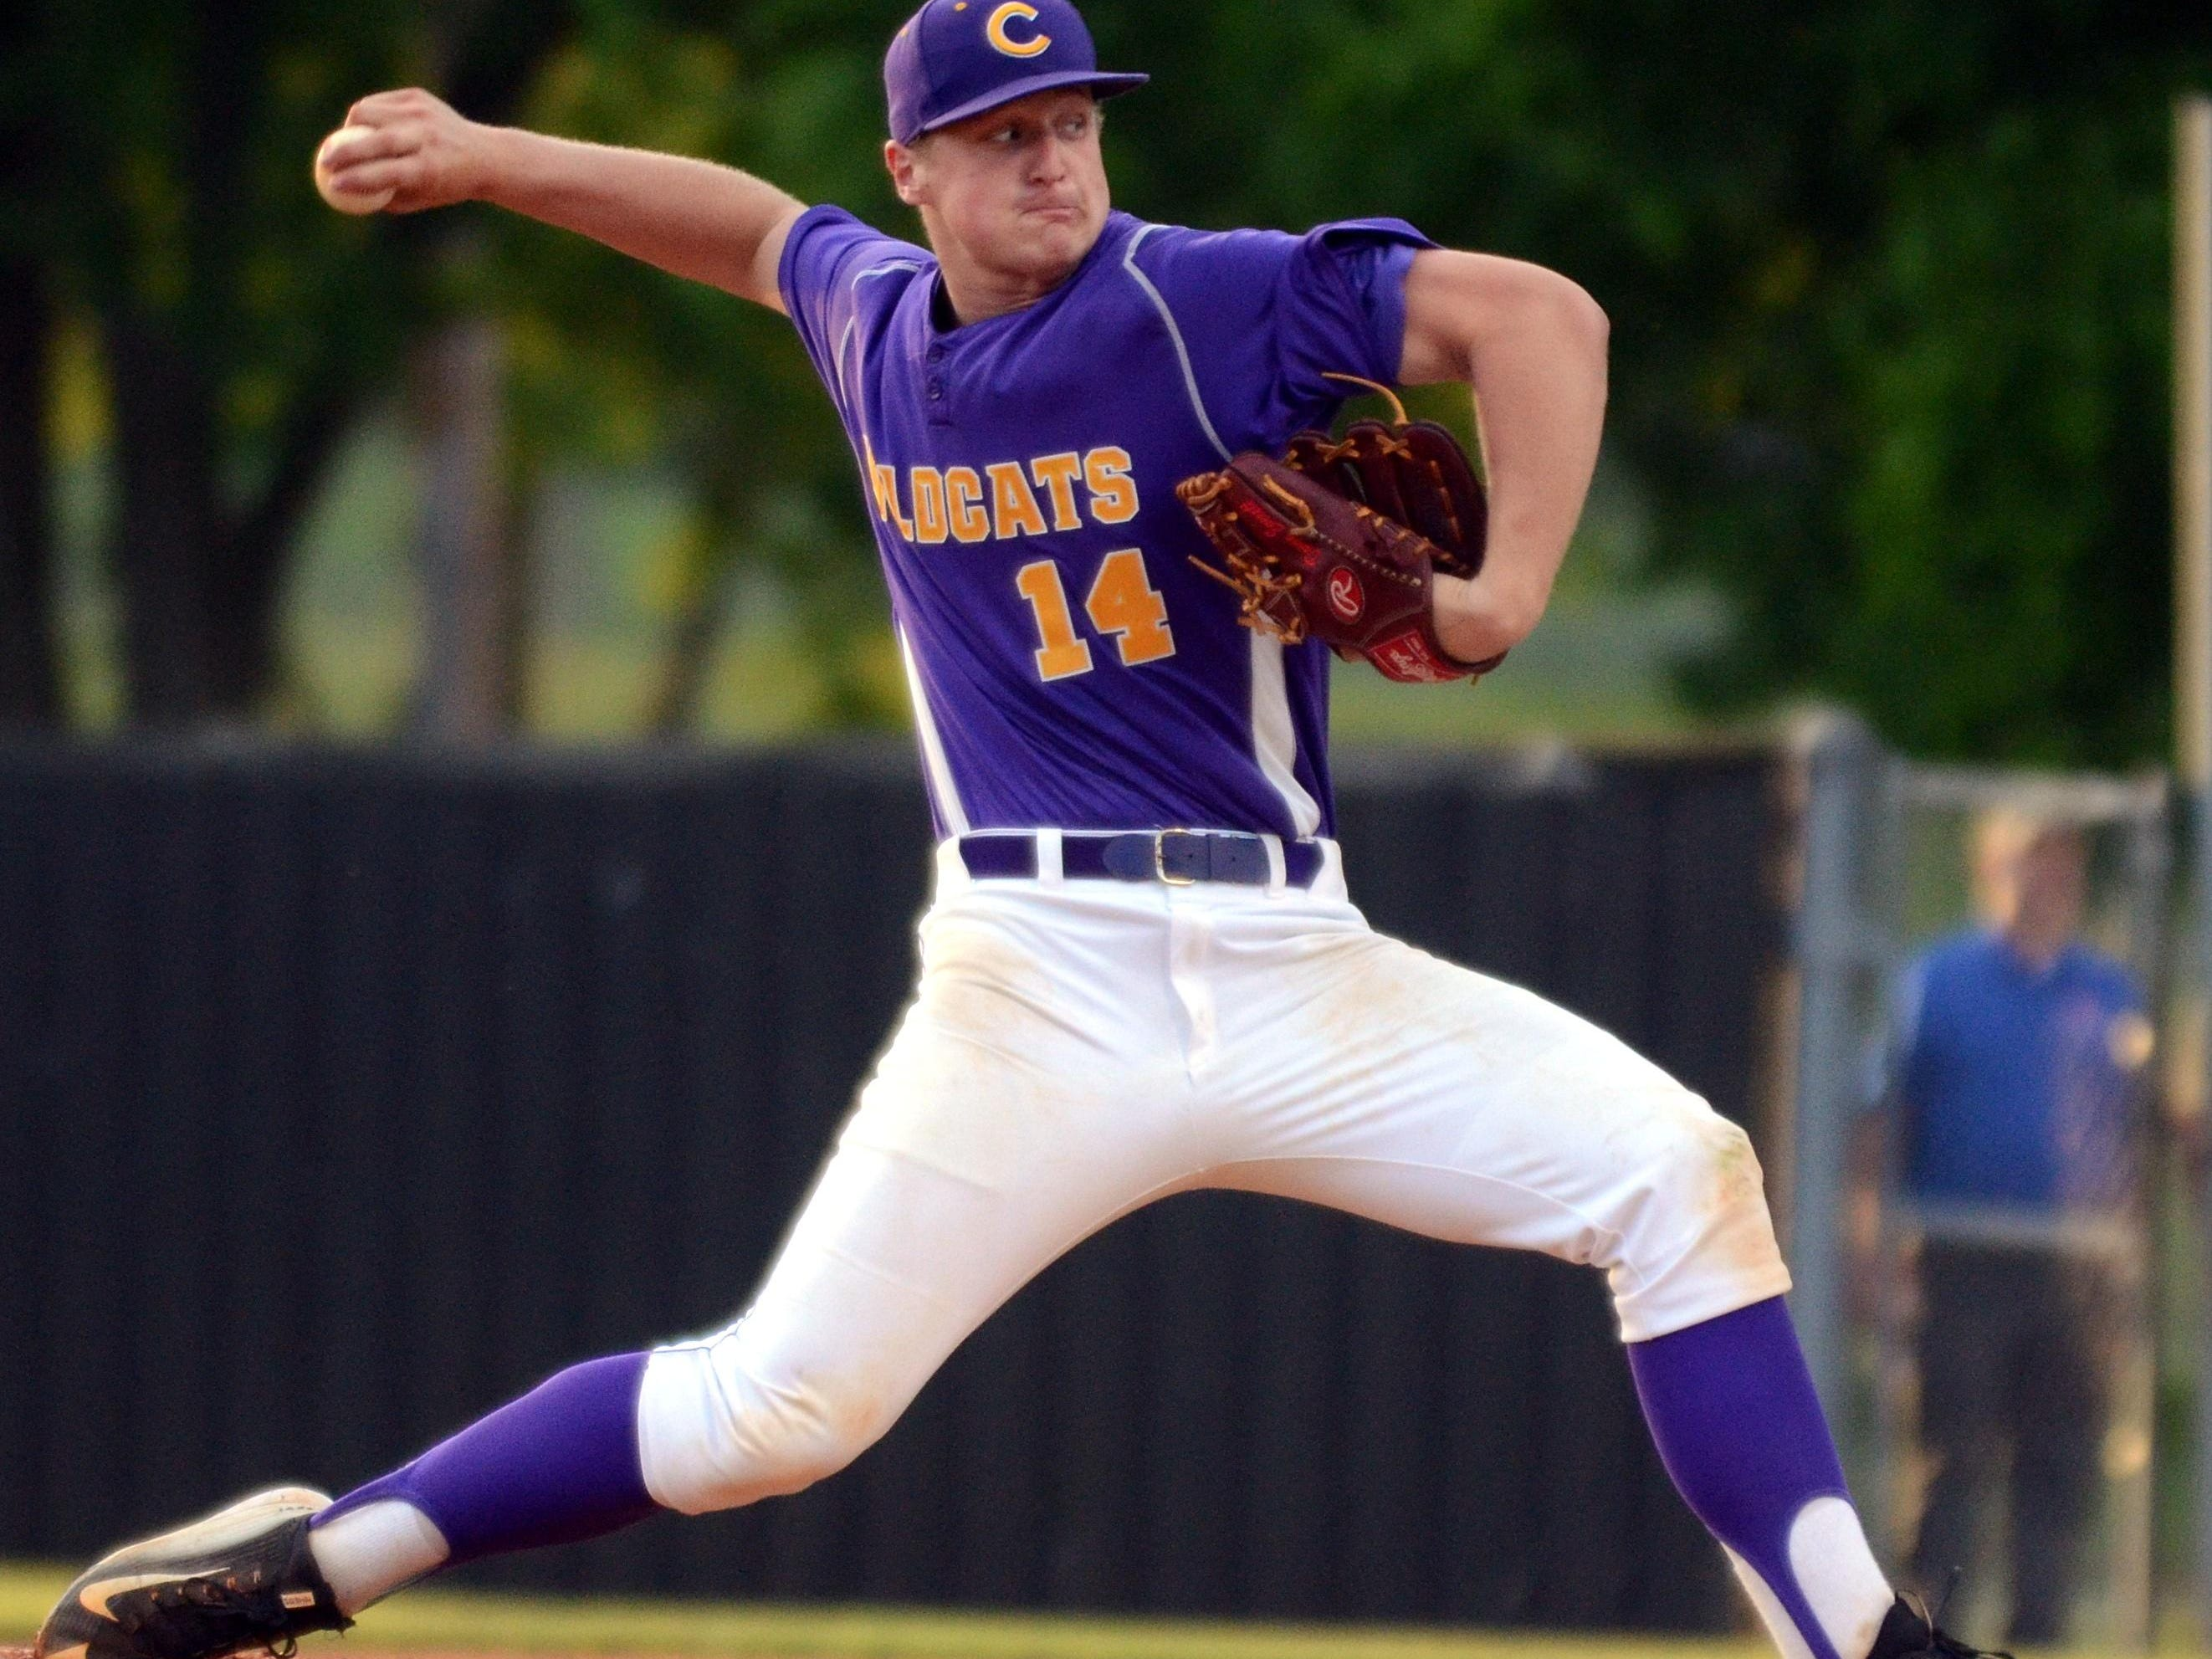 Clarksville pitcher and Vanderbilt signee Donny Everett was named a CBS MaxPreps First-Team All-American on Wednesday.